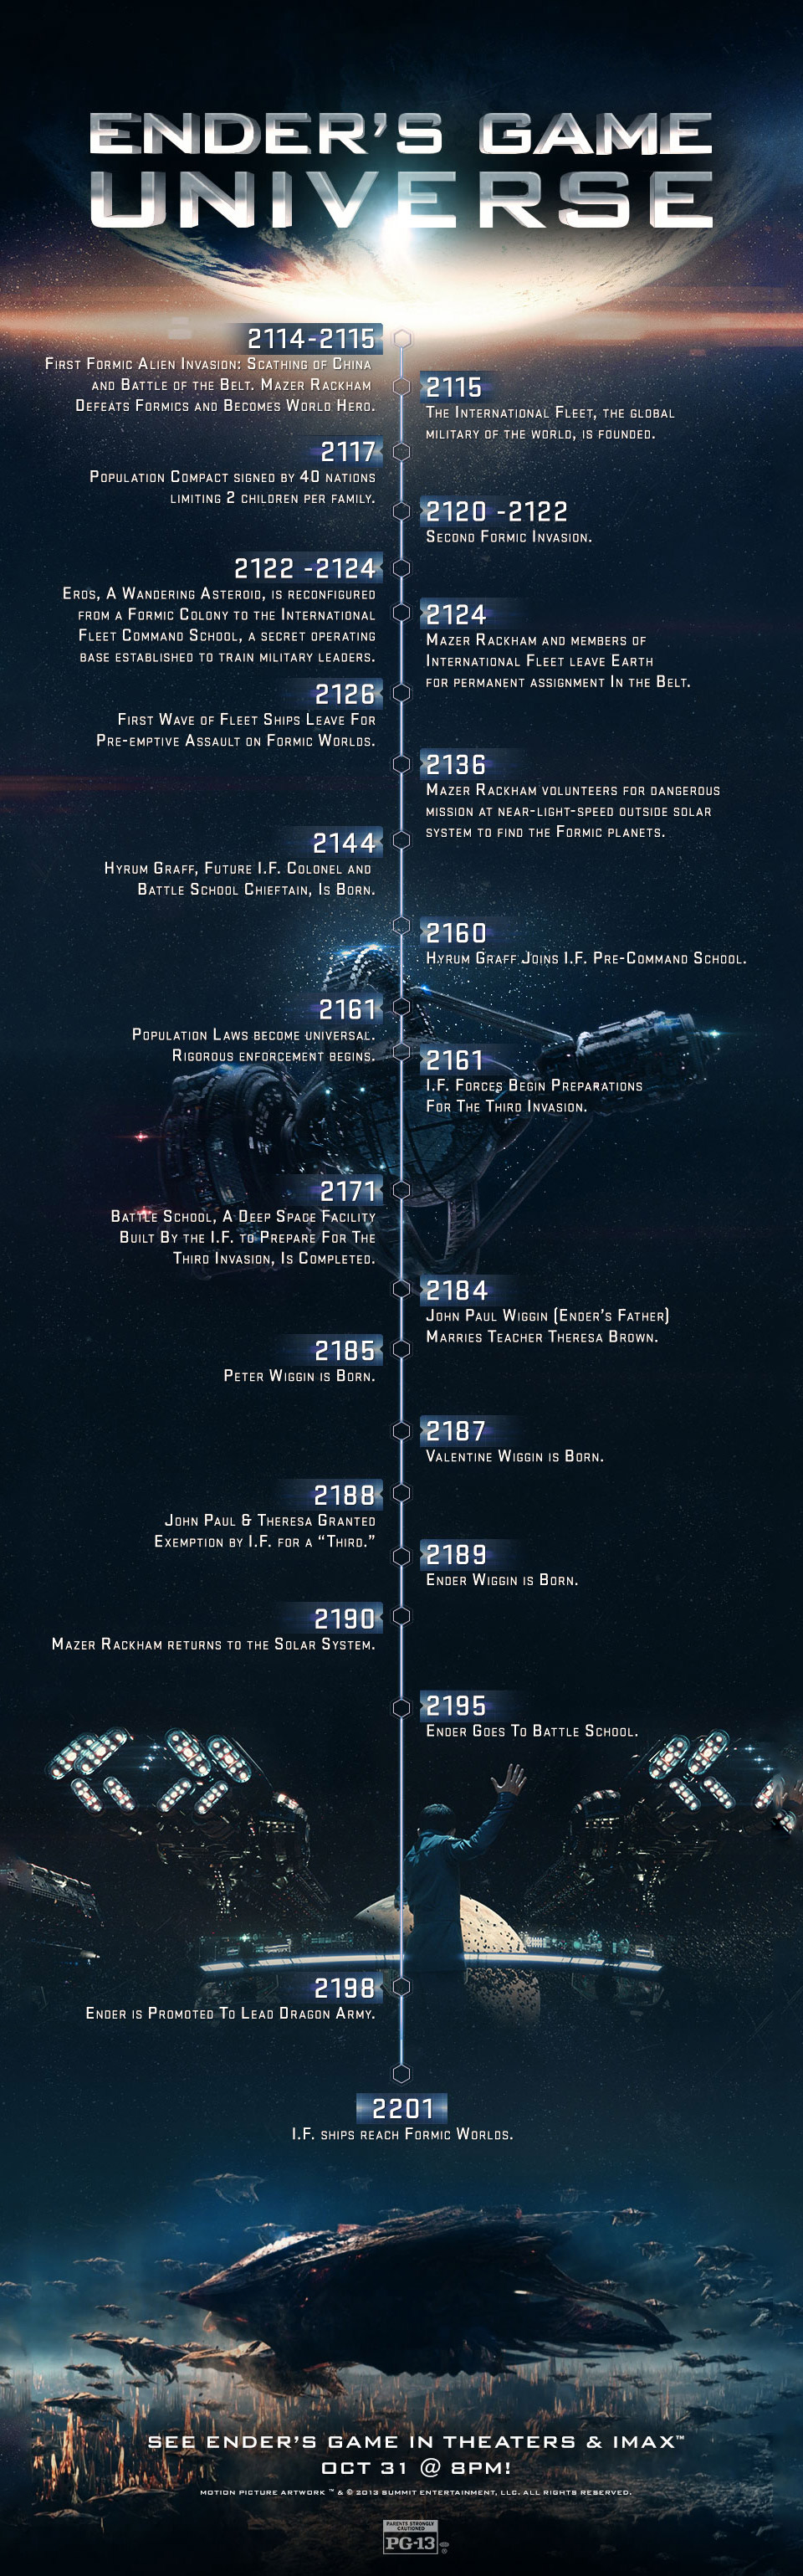 Ender's Game: Catch Up with This Timeline